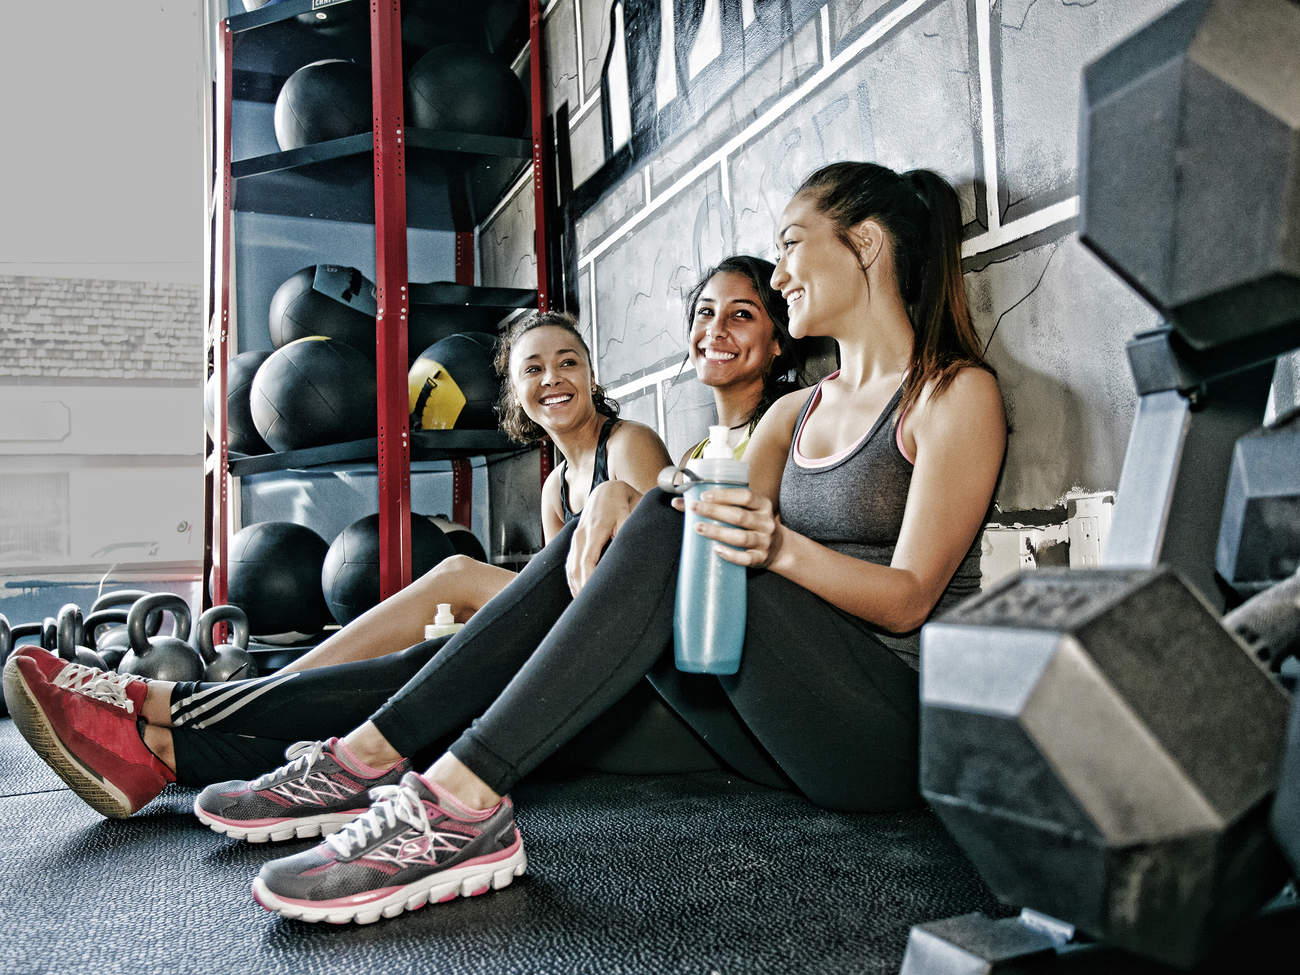 winter-workout-gym-friendship-exercise